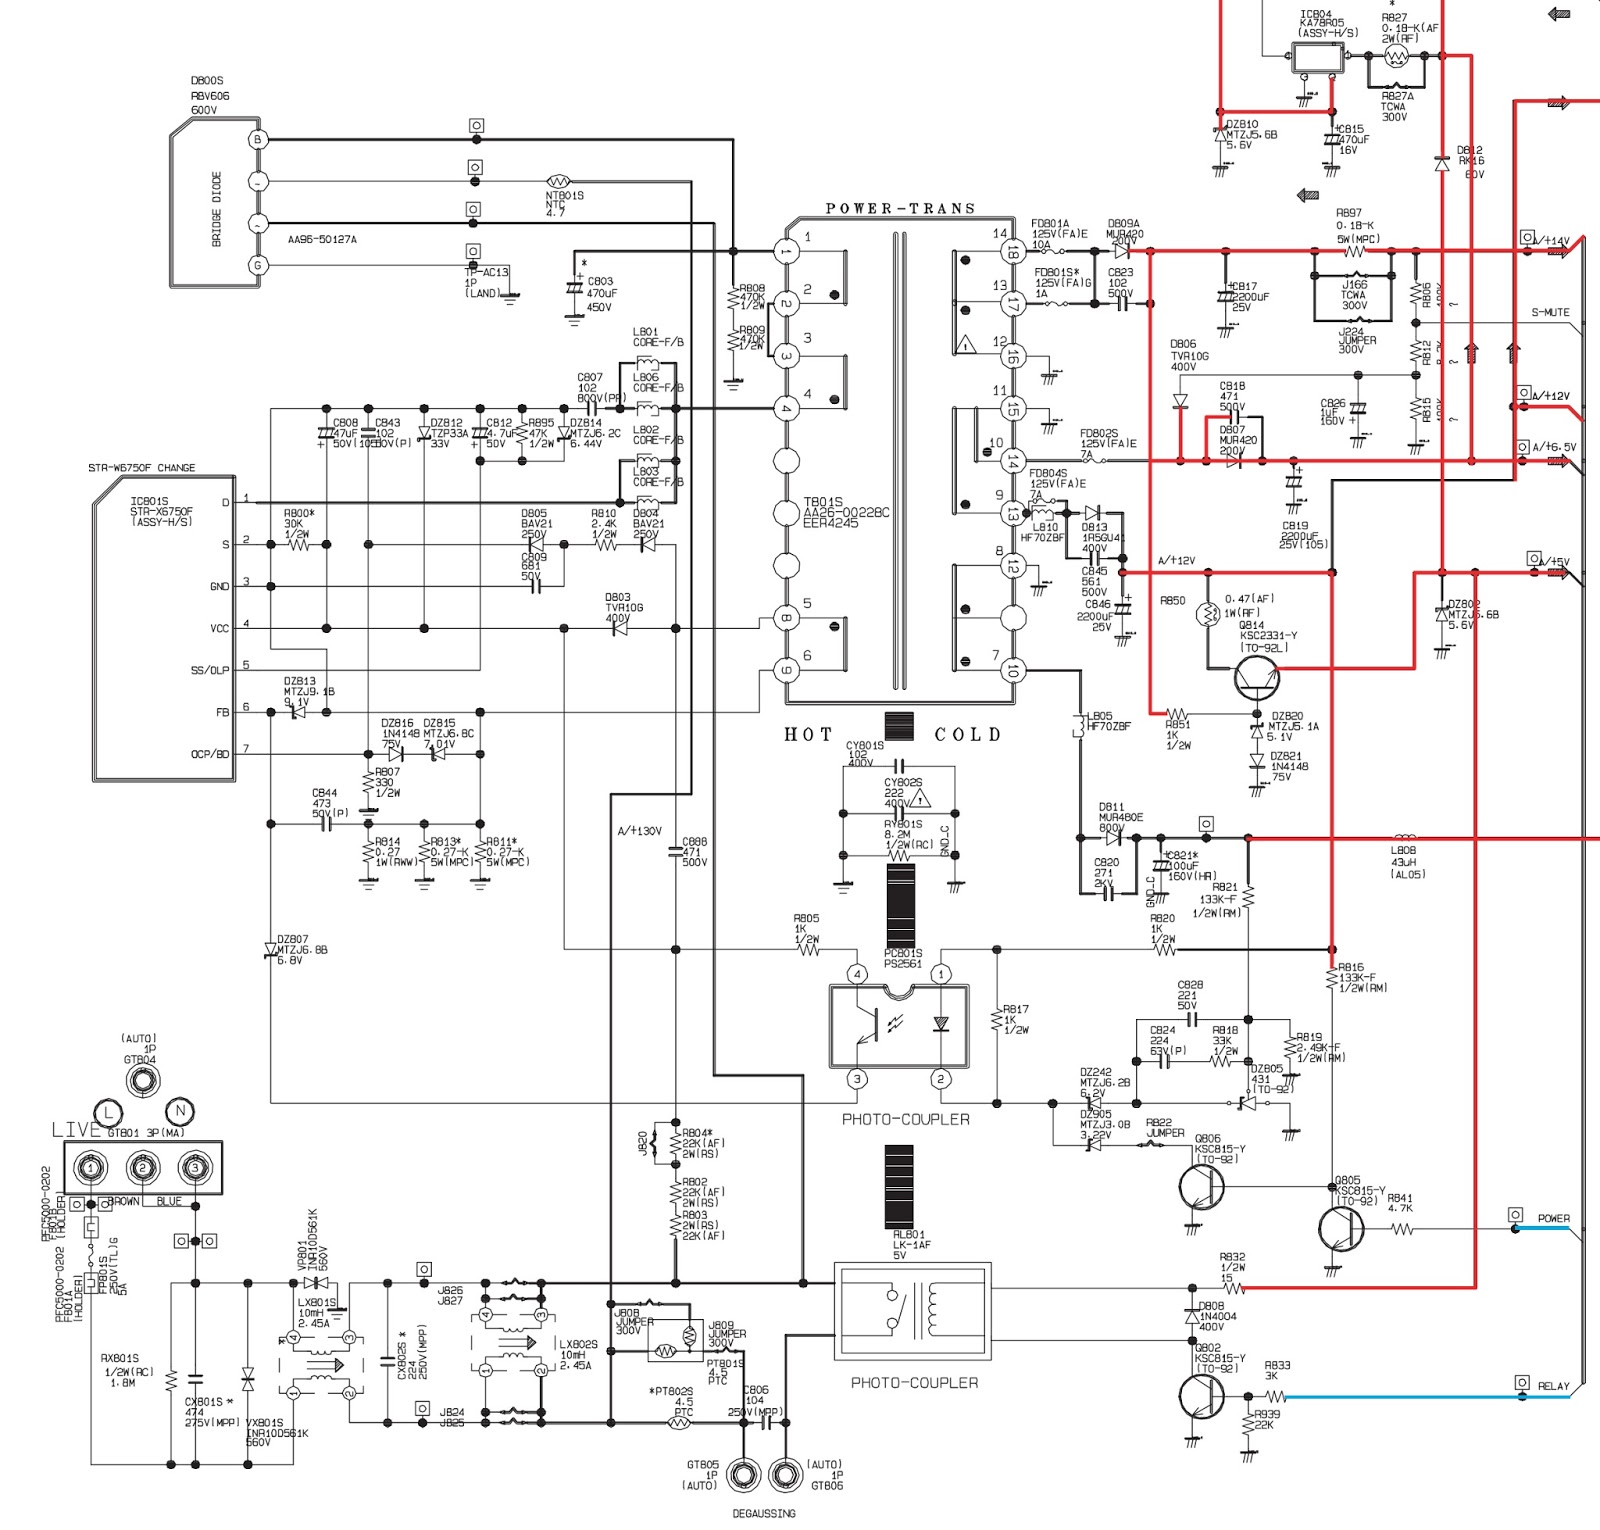 untitled.bmp samsung cl29x50 power supply [smps] schematic [circuit diagram samsung led tv wiring diagram at bakdesigns.co